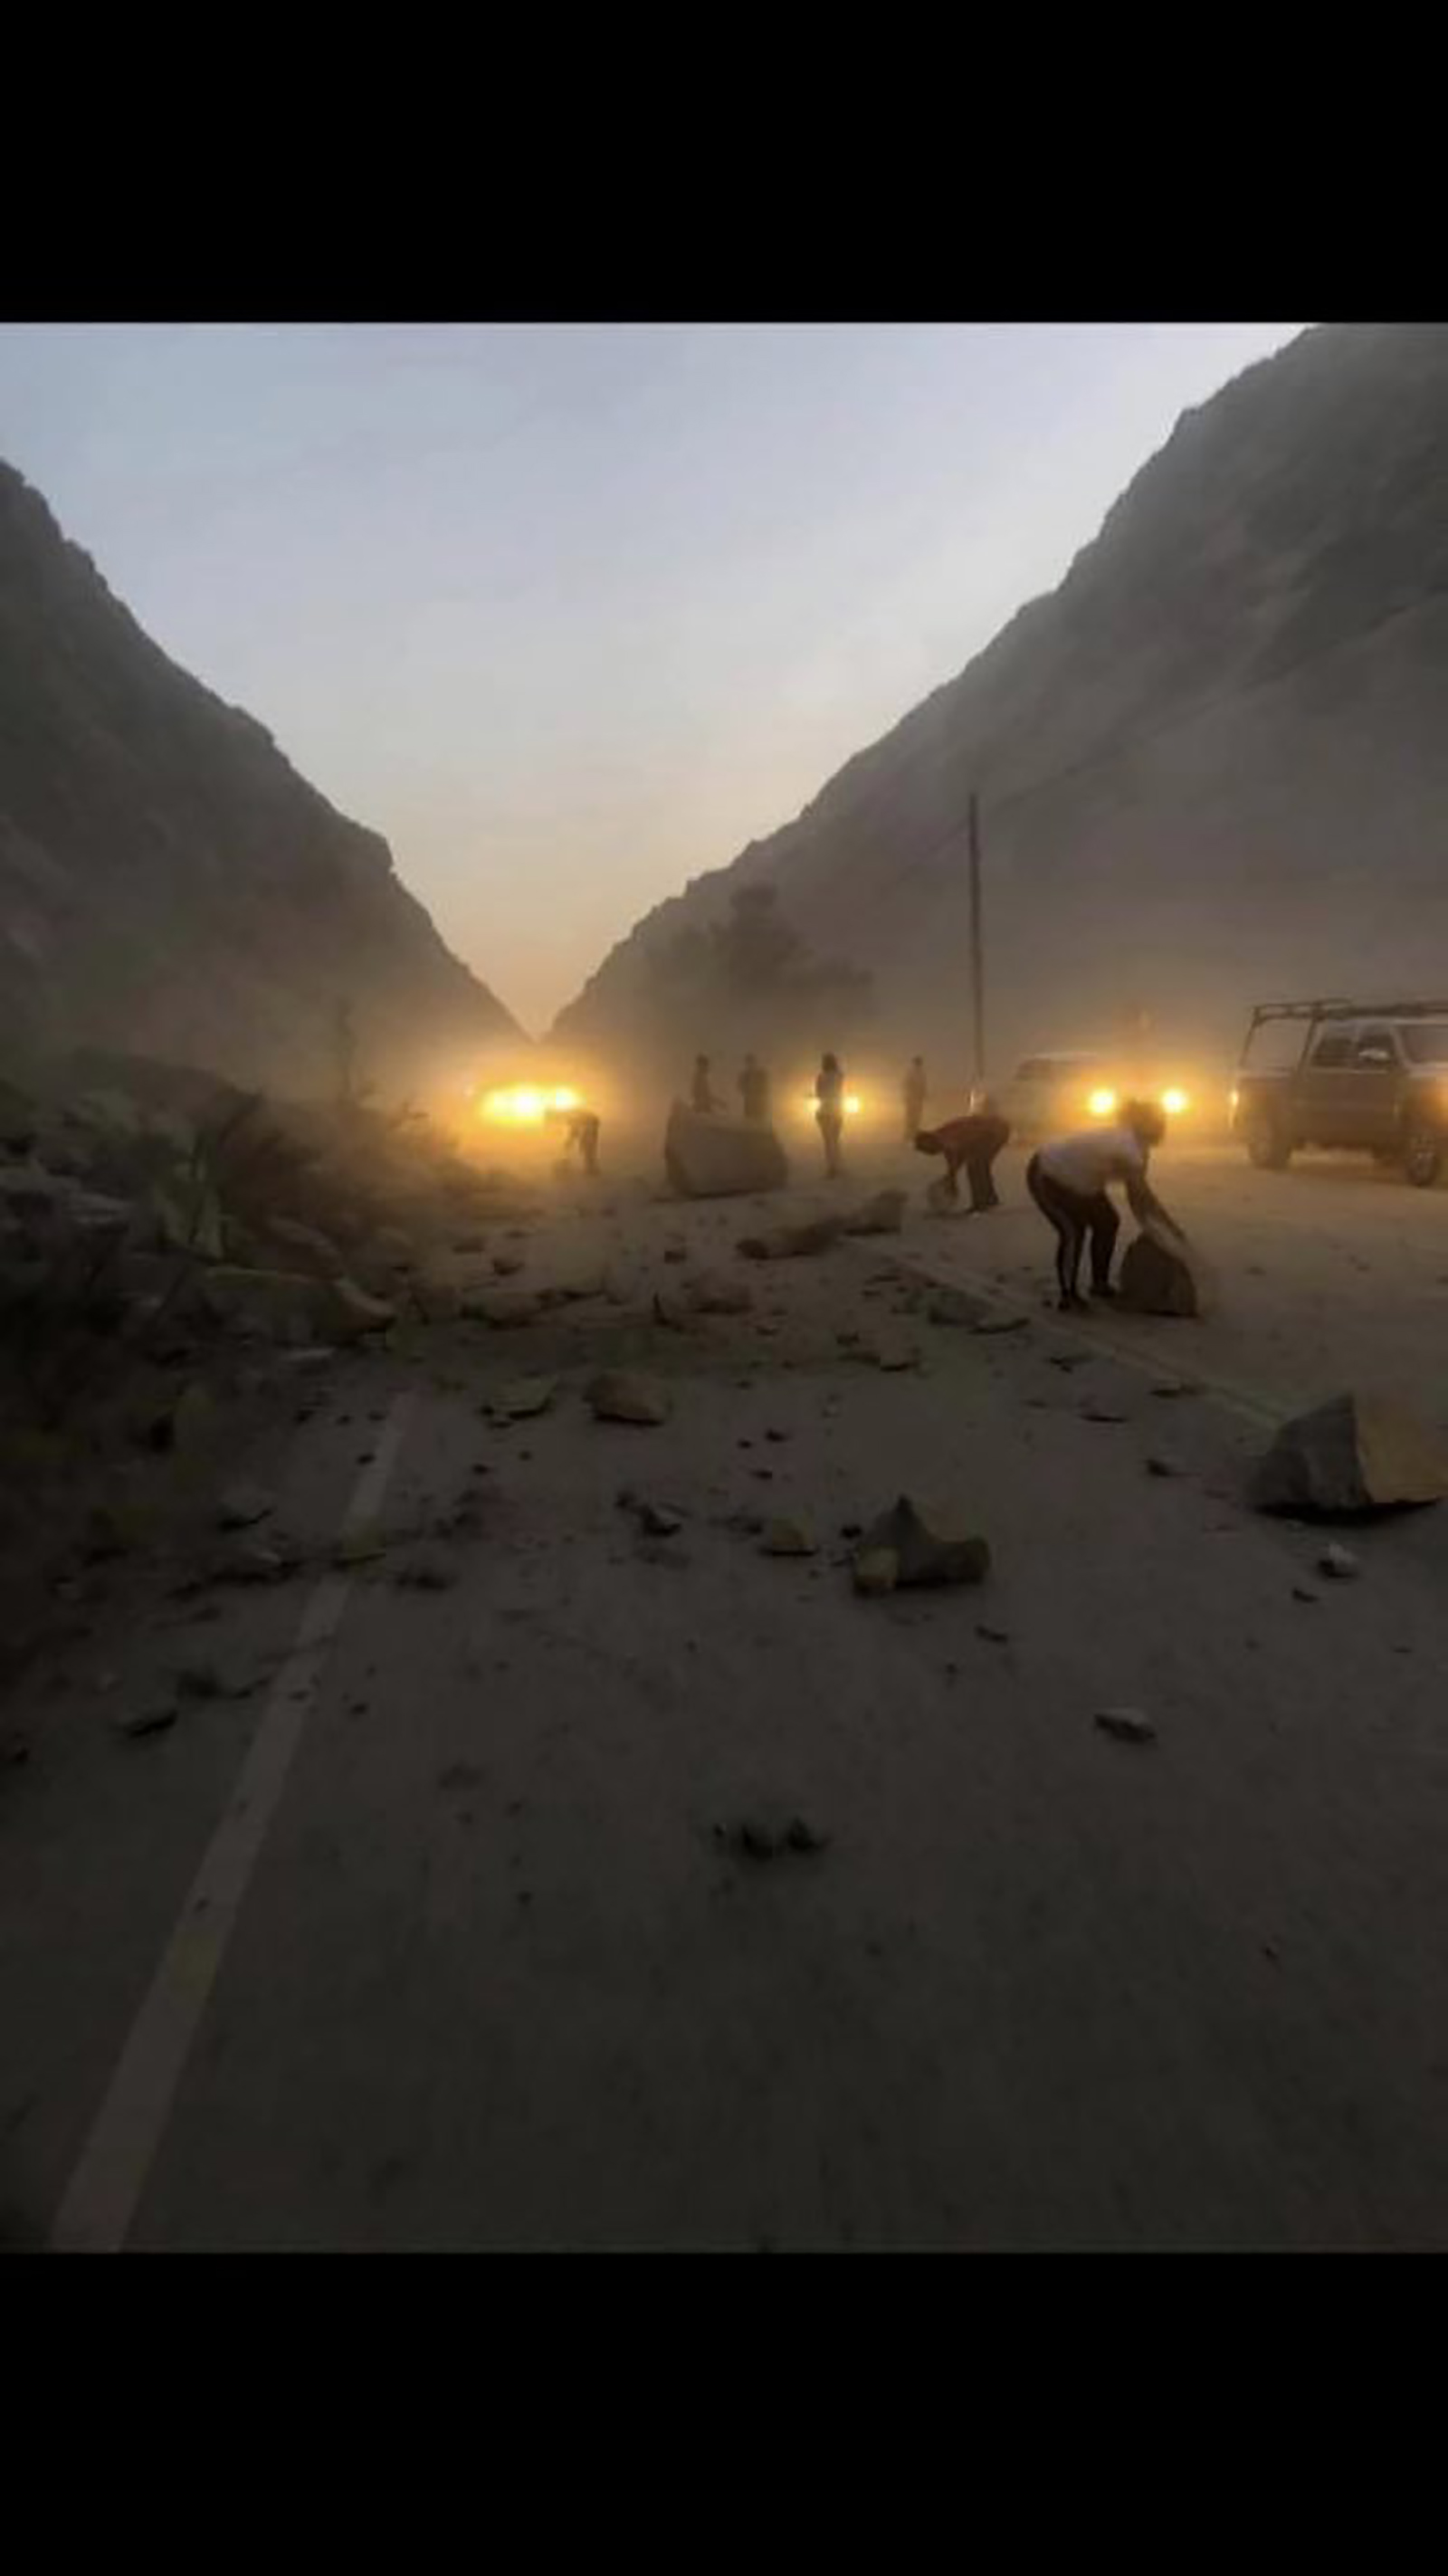 State Route 178 in Kern County was closed due to rock slide.